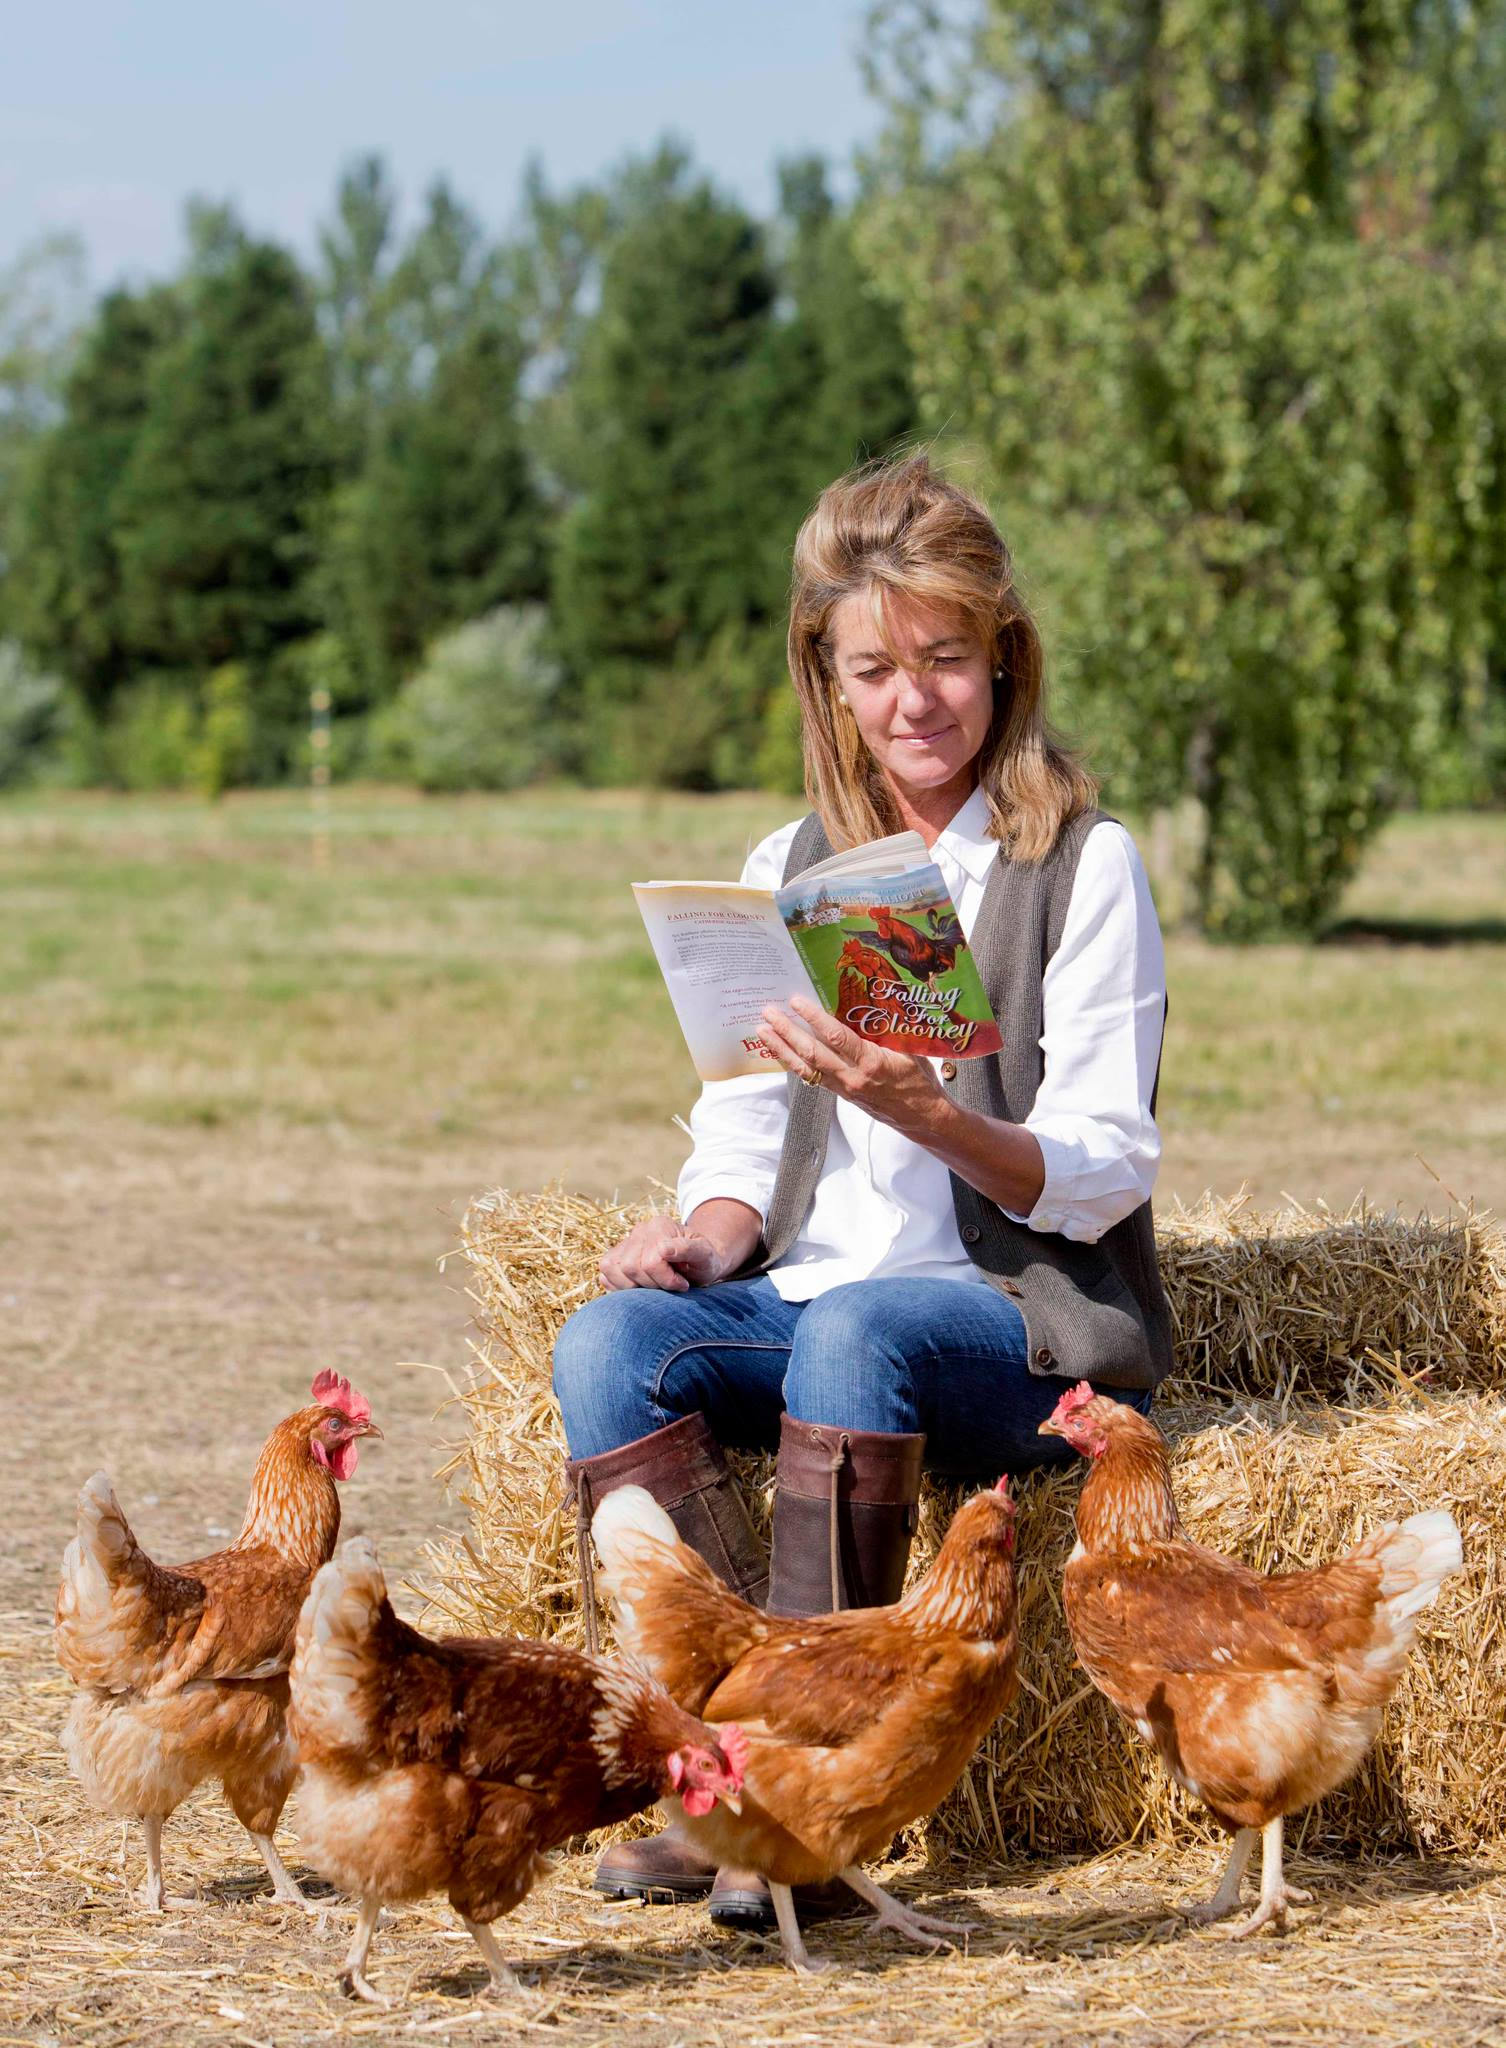 Catherine with Chickens